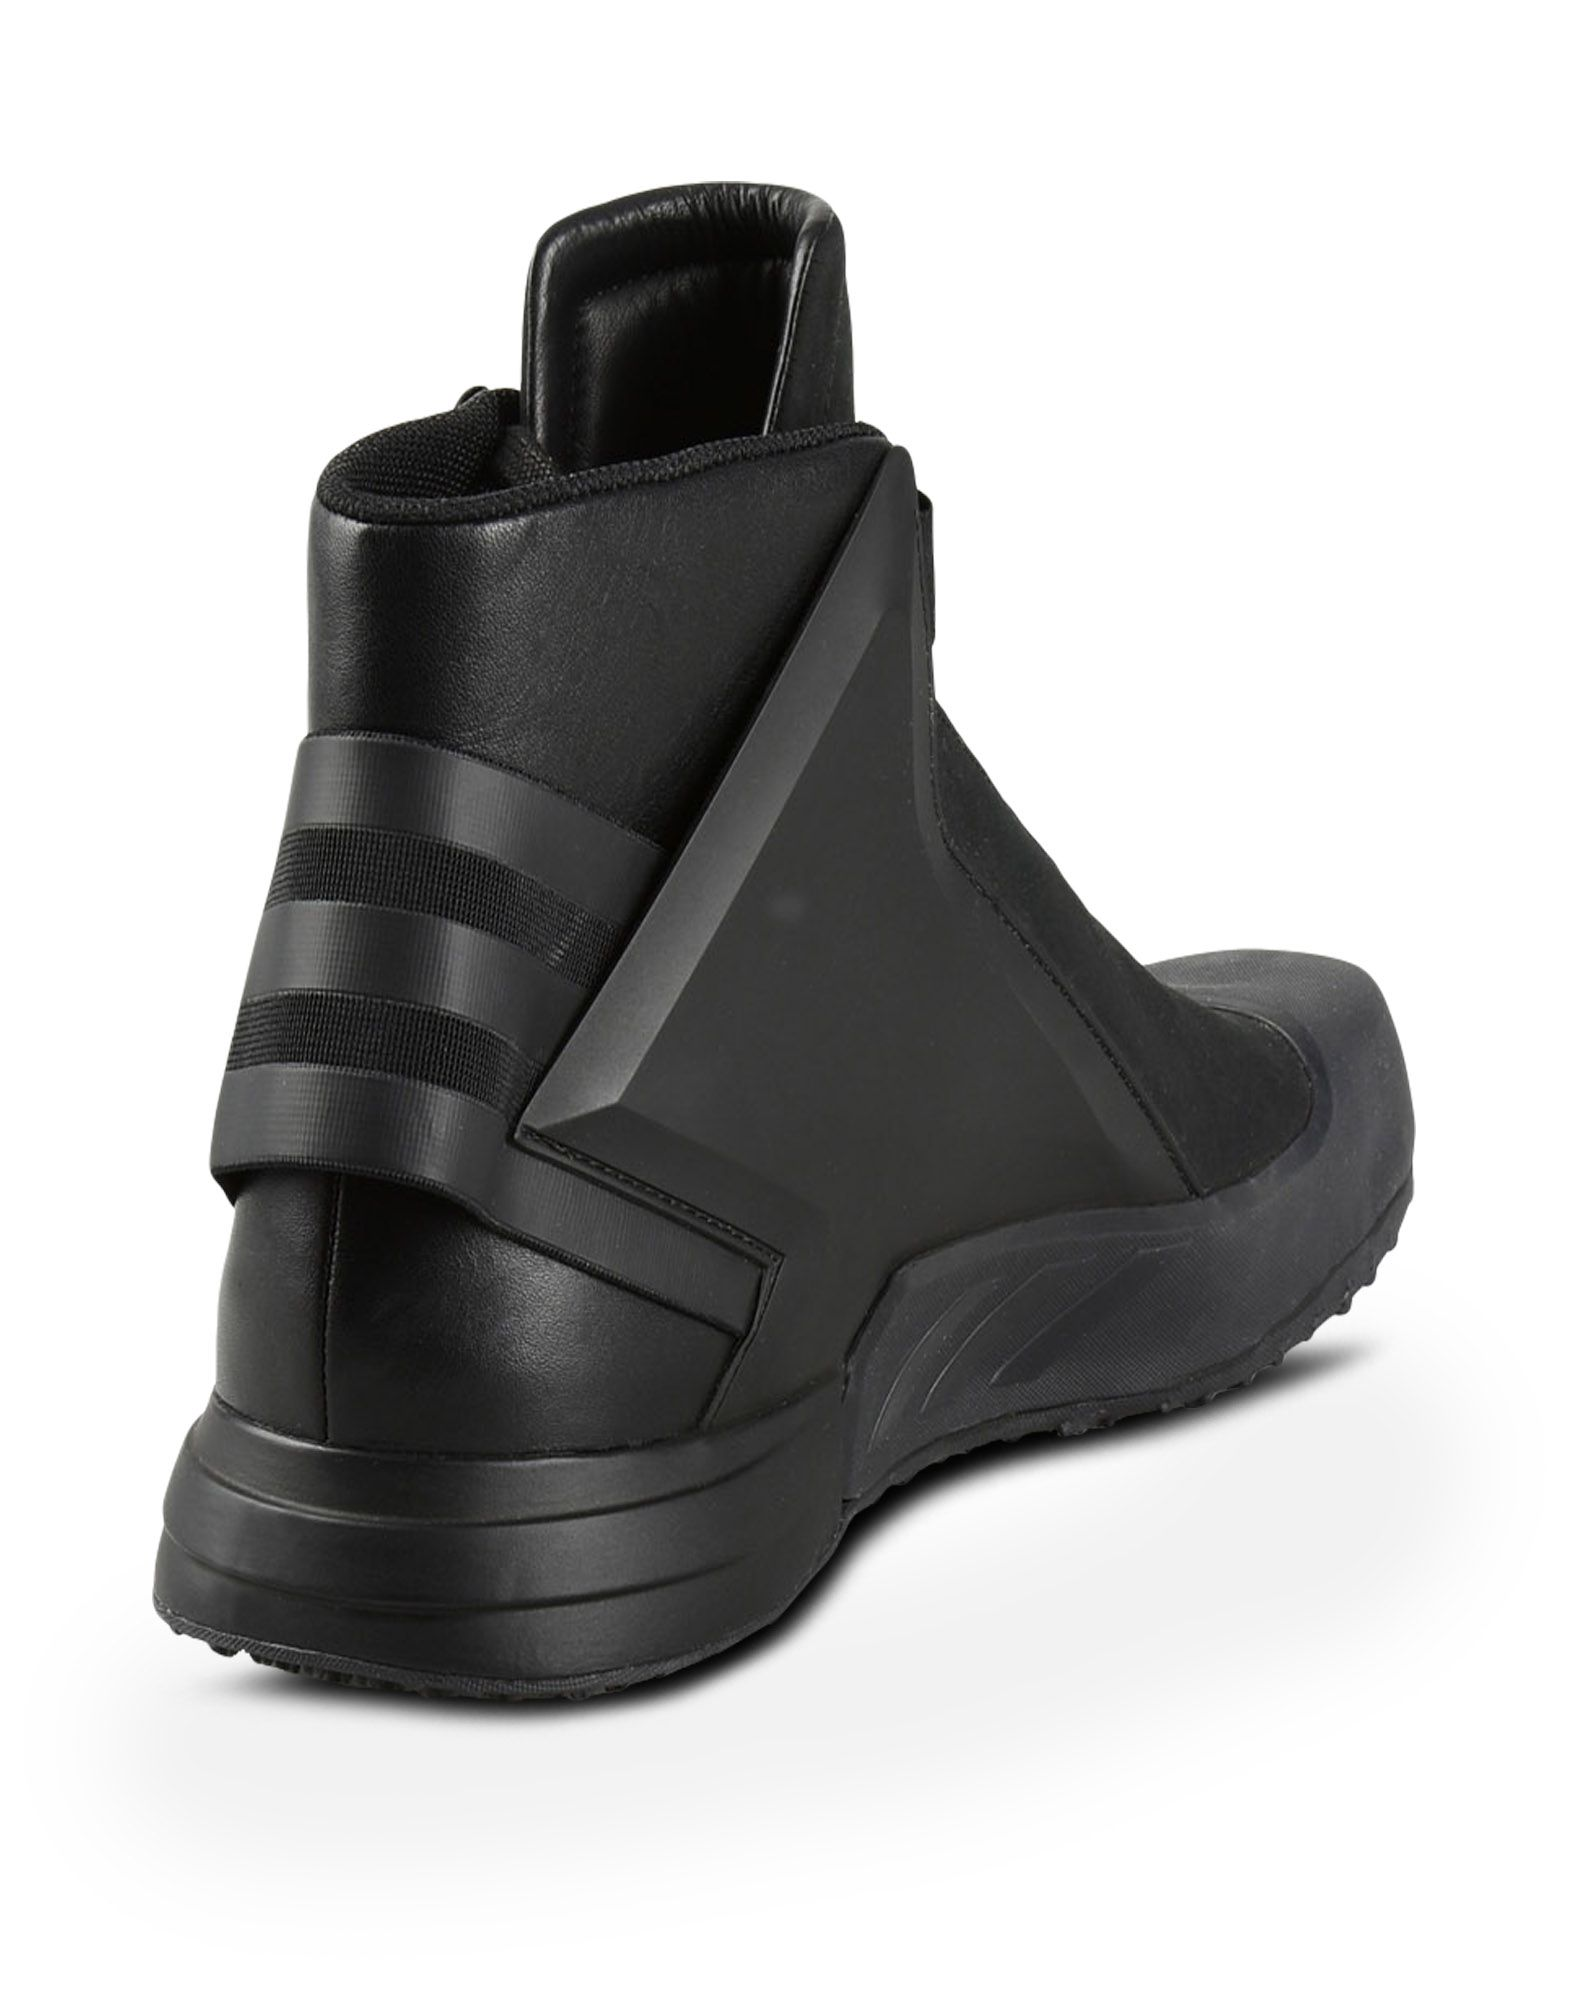 ba8f7907ba4b4 ... Y-3 Y-3 BBALL TECH High-top sneakers Man d ...